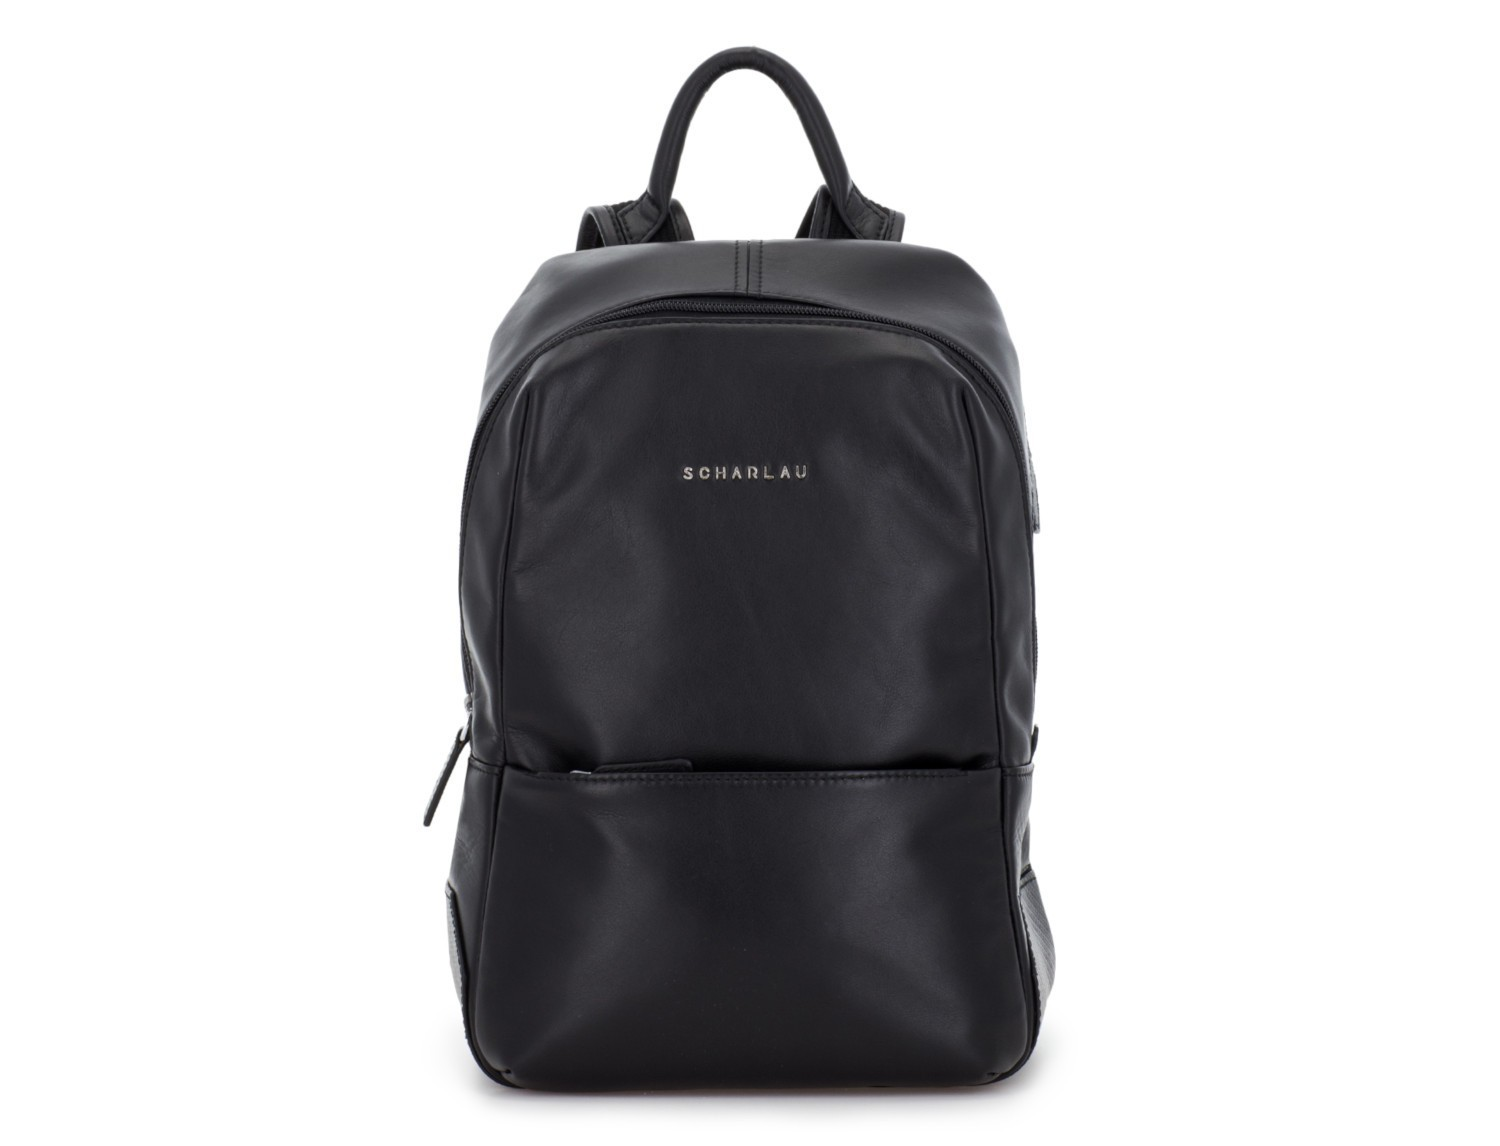 small leather backpack black front